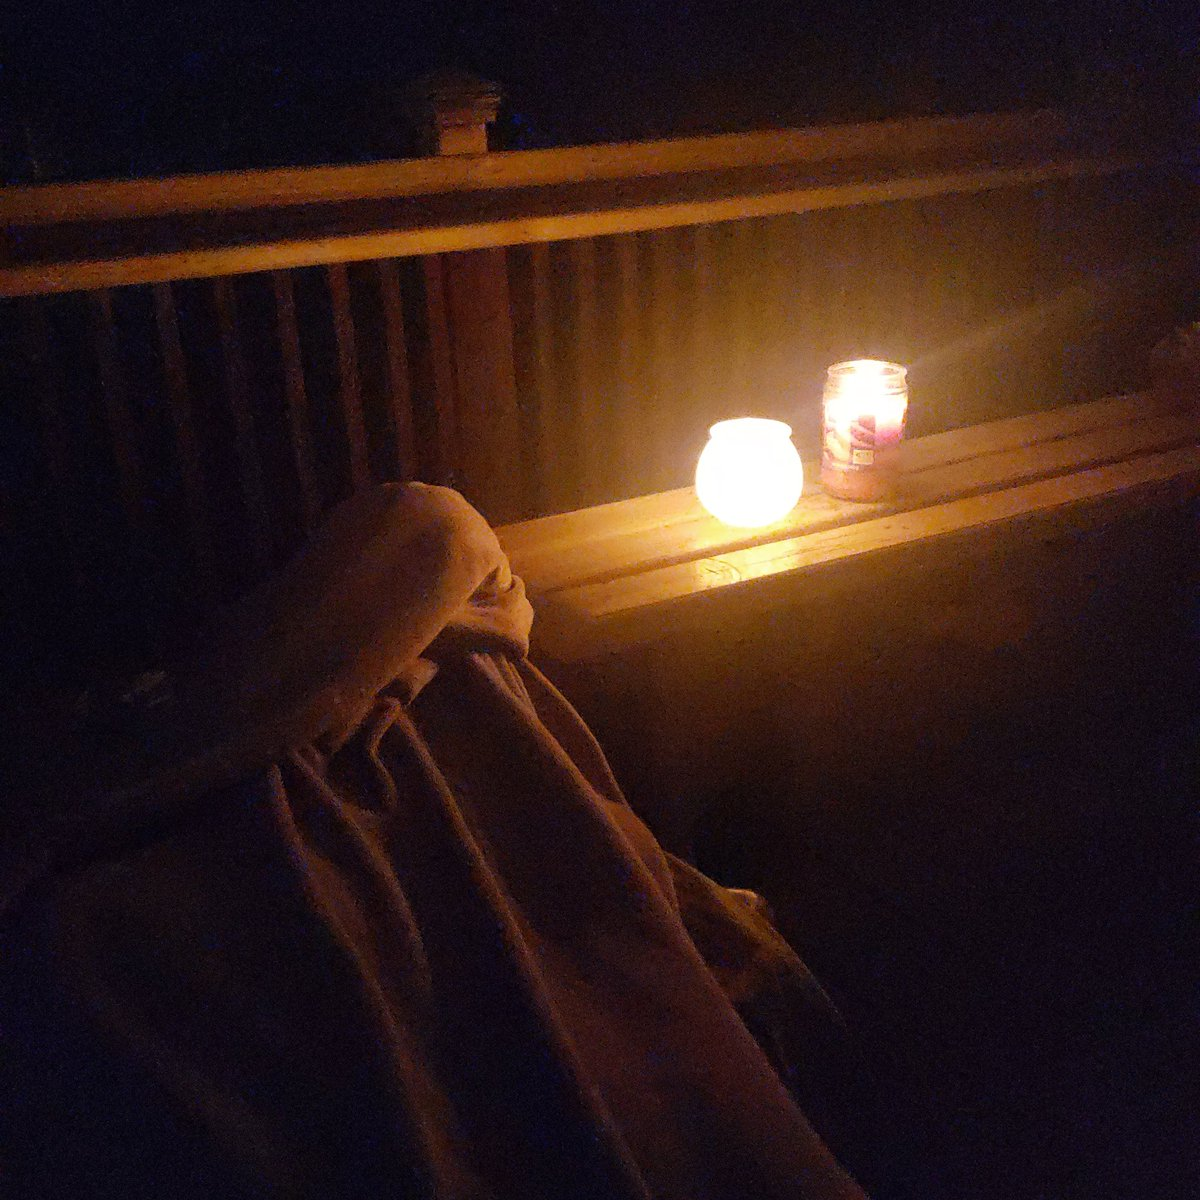 Audiobook, candles, and a cool fall night on the front porch. #teacherlife #love #porchlife #reading https://t.co/XHofsQpjIf